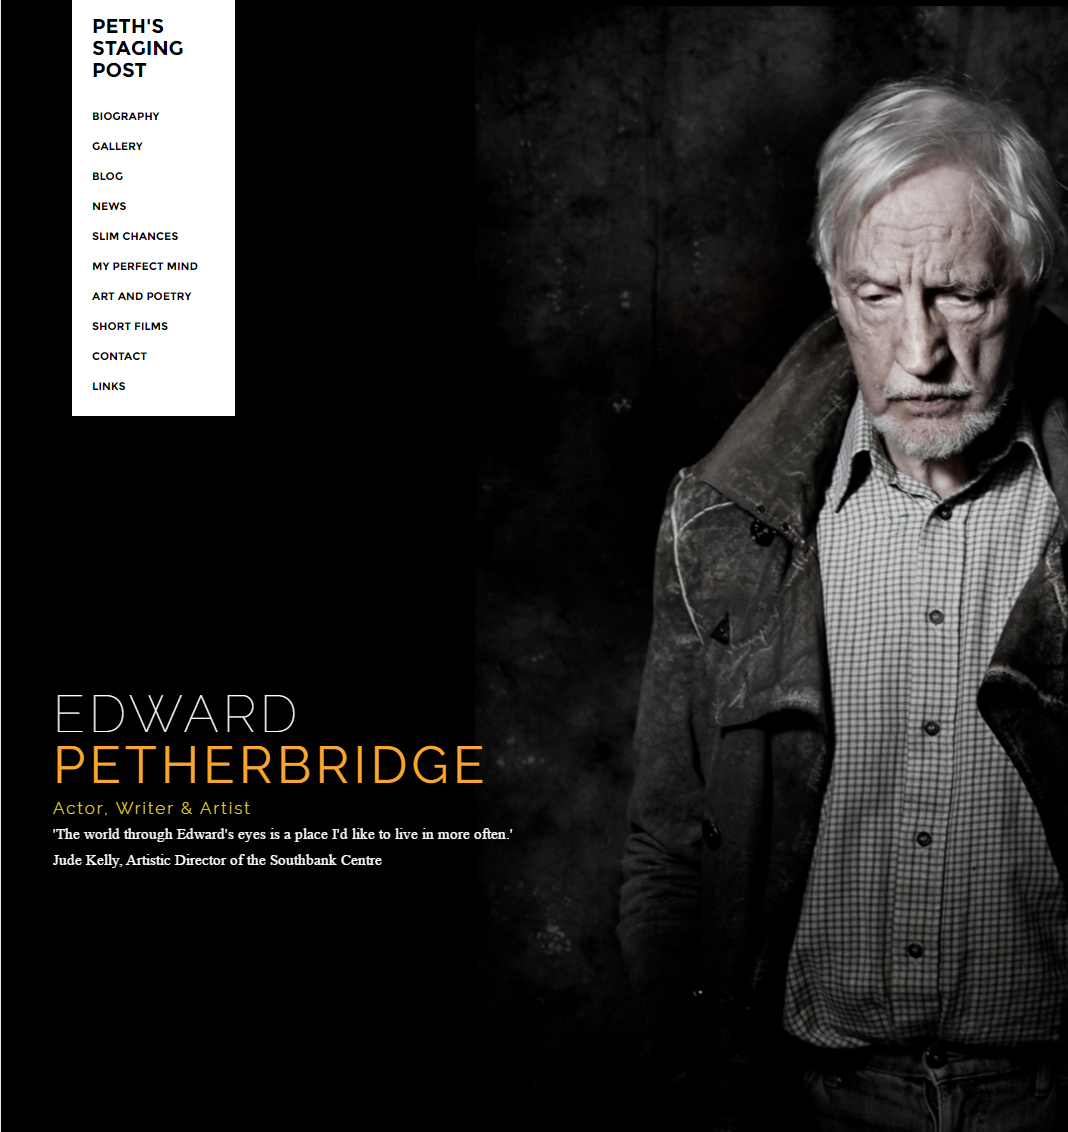 Peth's Staging Post: Edward Petherbridge